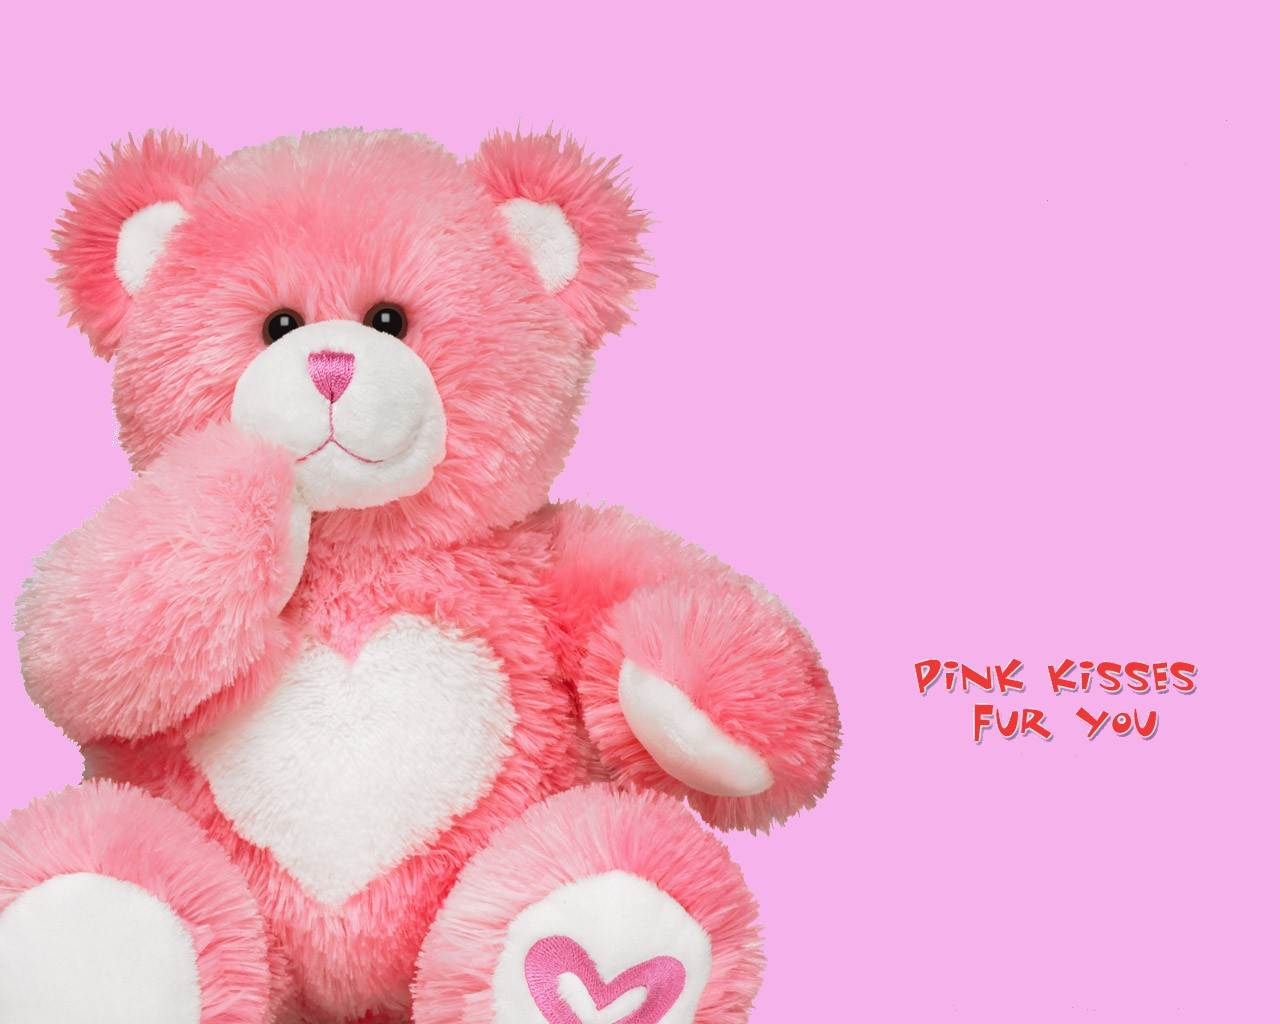 Teddy Bear Wallpapers Free Download Group  1280x1024